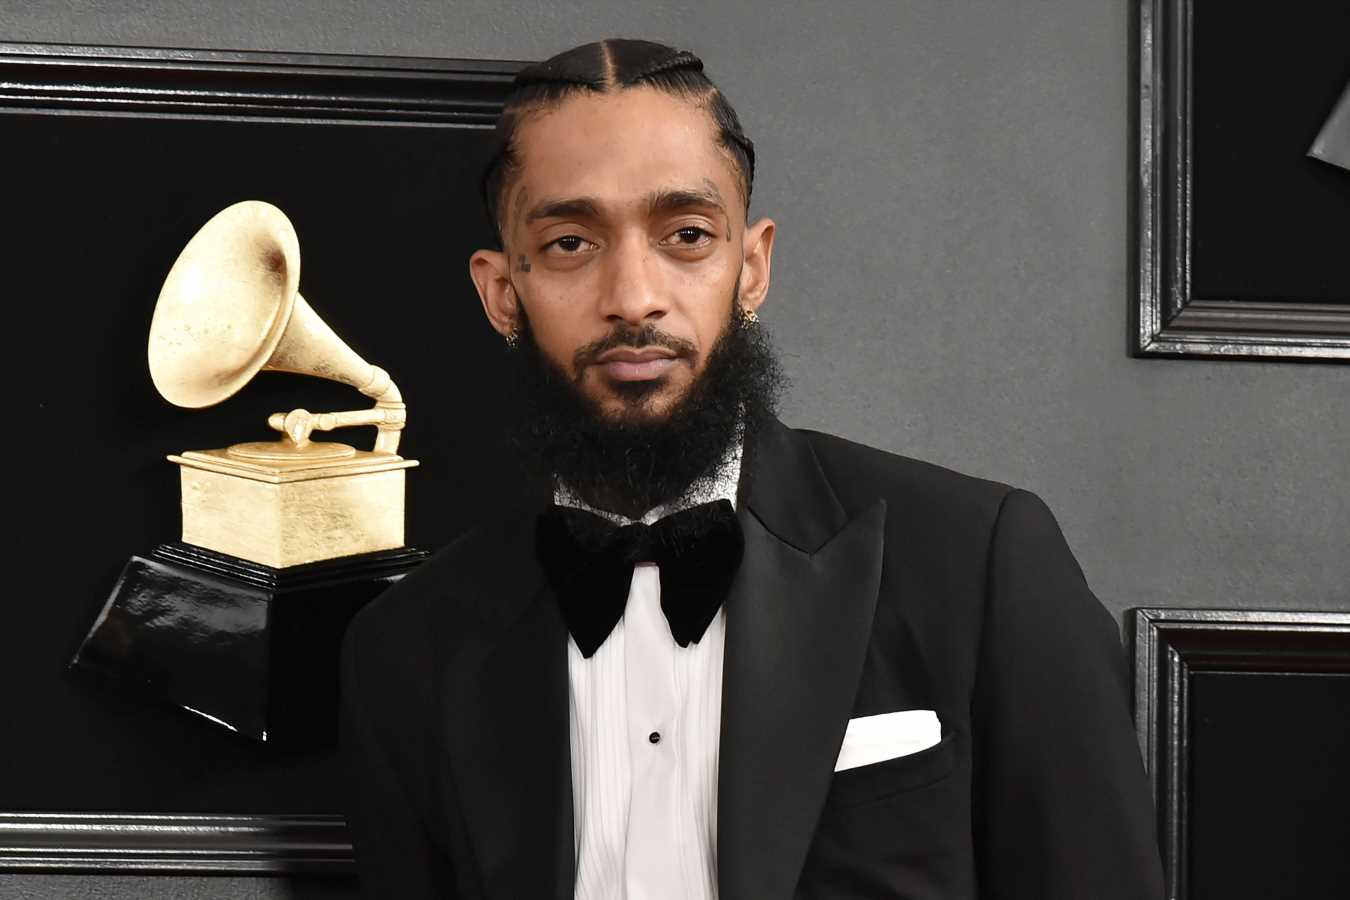 Accused Nipsey Hussle Murder Getaway Car Driver Offered Police Protection Amid Death Threats